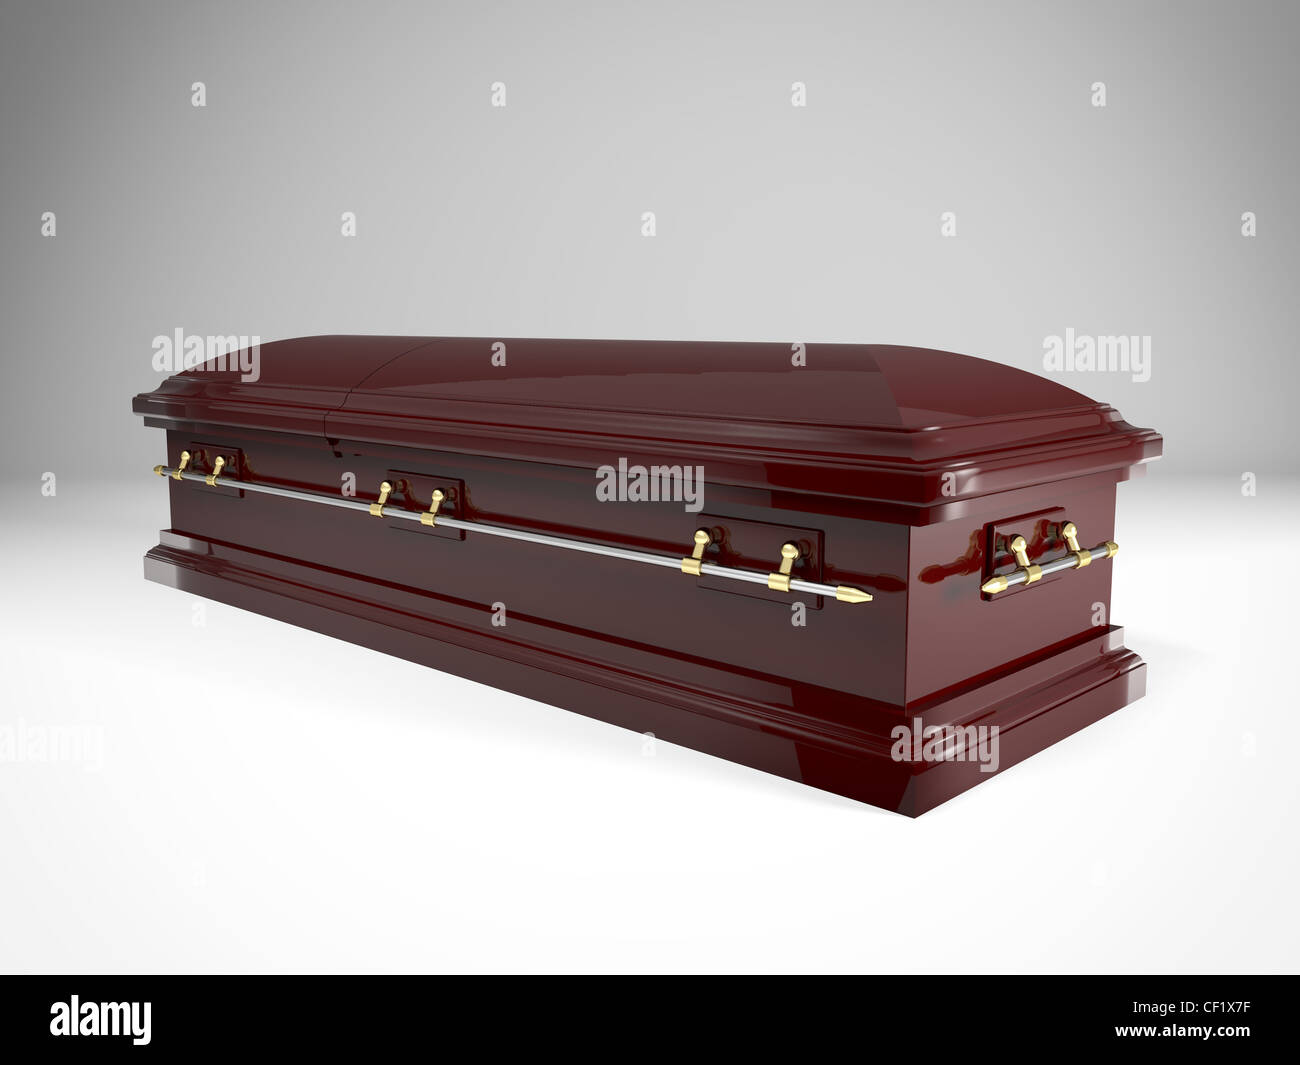 3d image of classic coffin - Stock Image